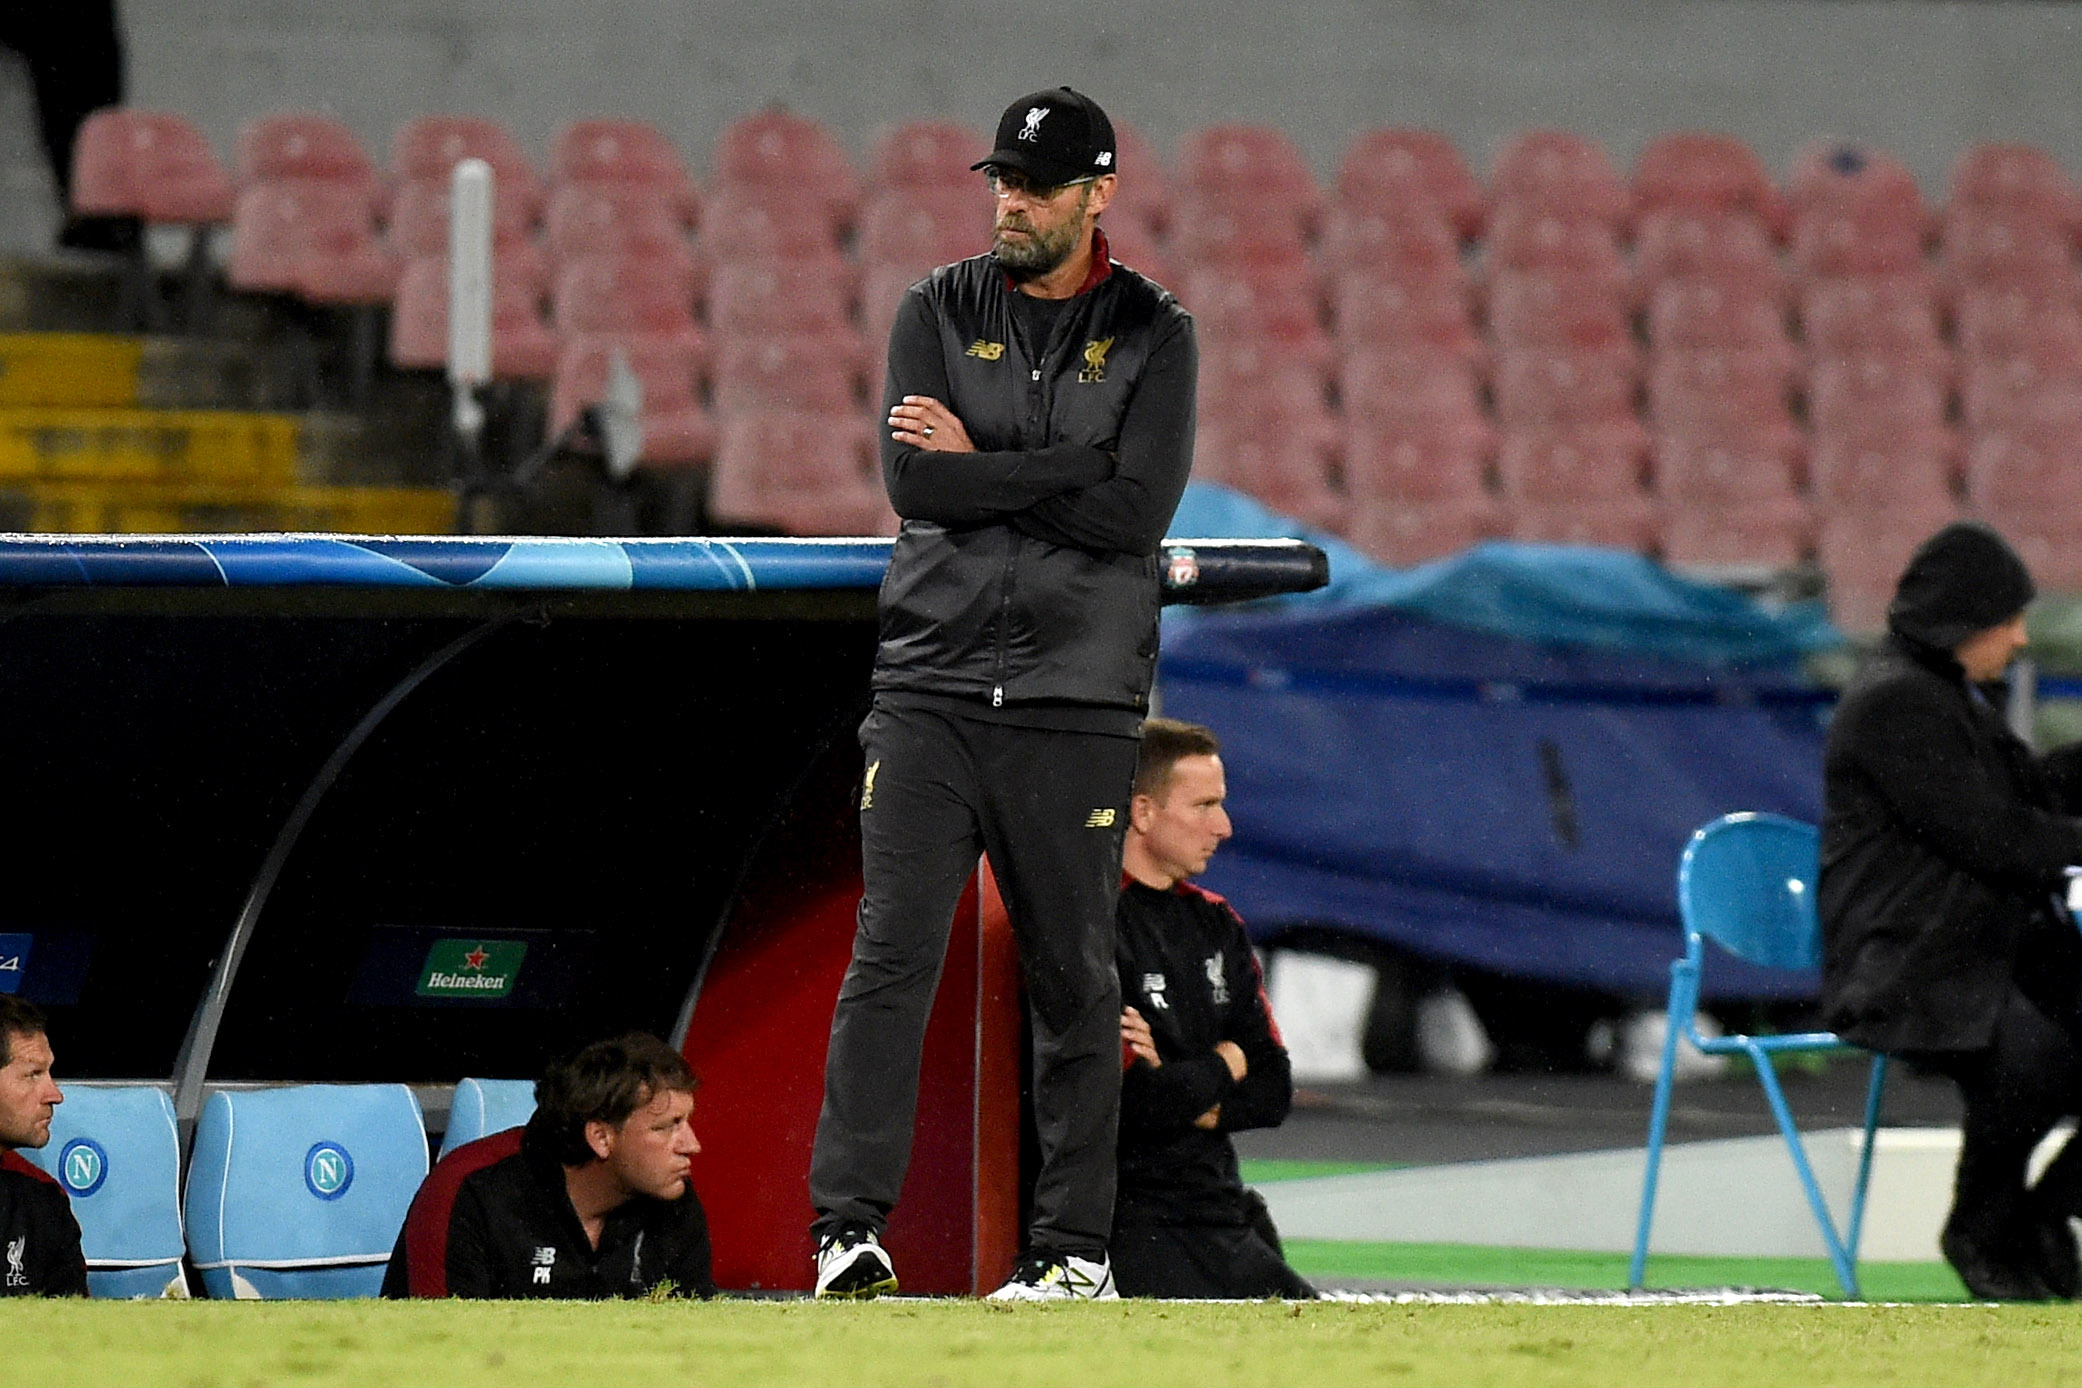 LACKLUSTRE LIVERPOOL SHOULD BE WORRIED BY RED STAR LOSS